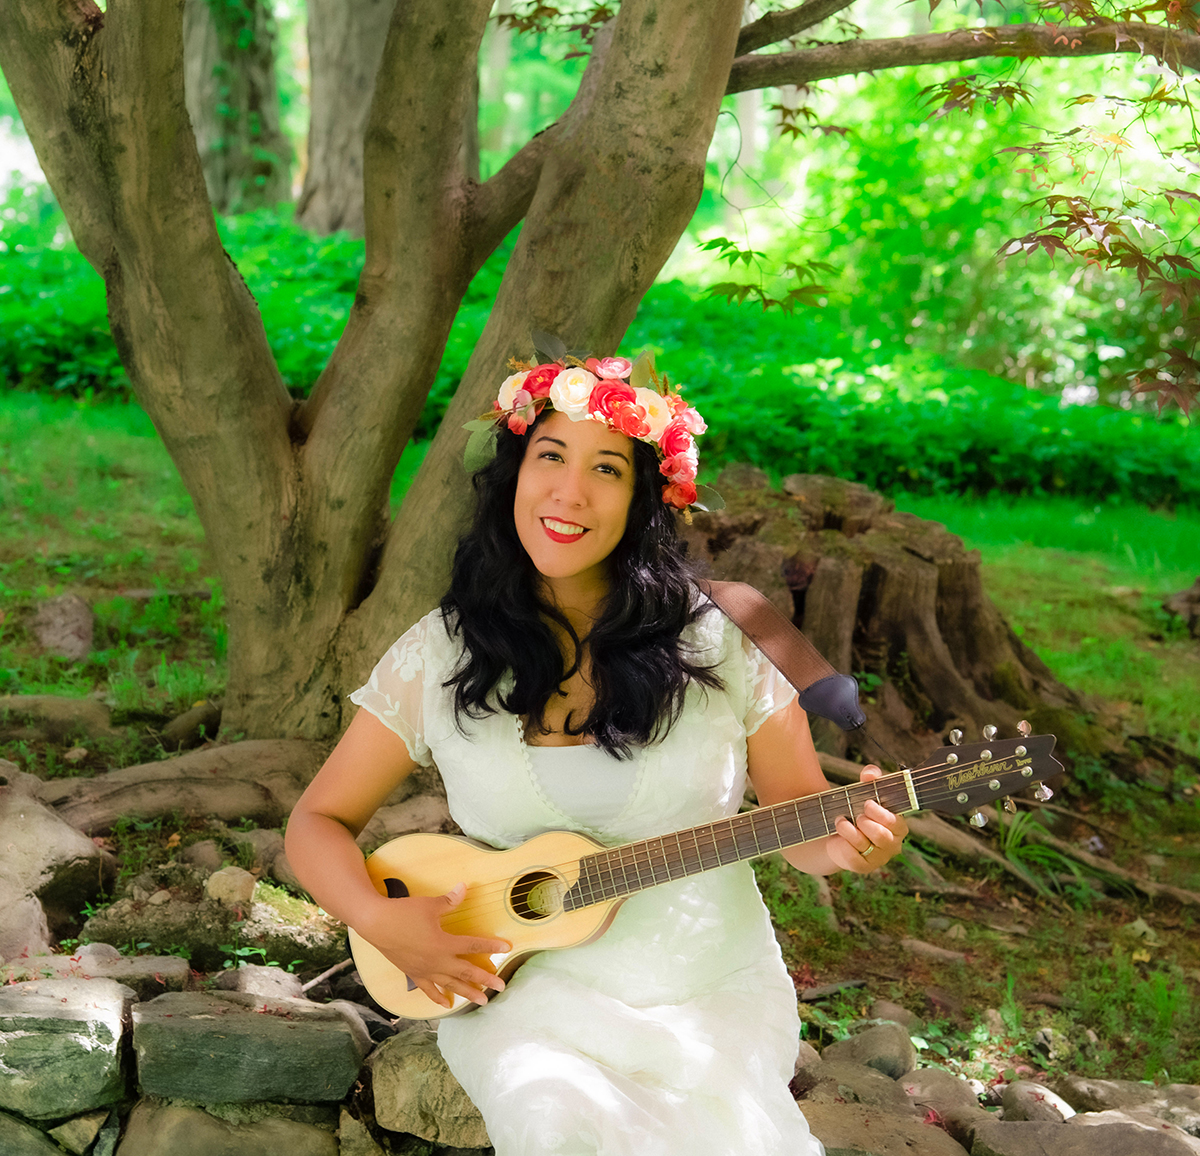 Pacha Fiesta, a pre-release concert with Flor Bromley and friends at Pier I, Riverside Park South